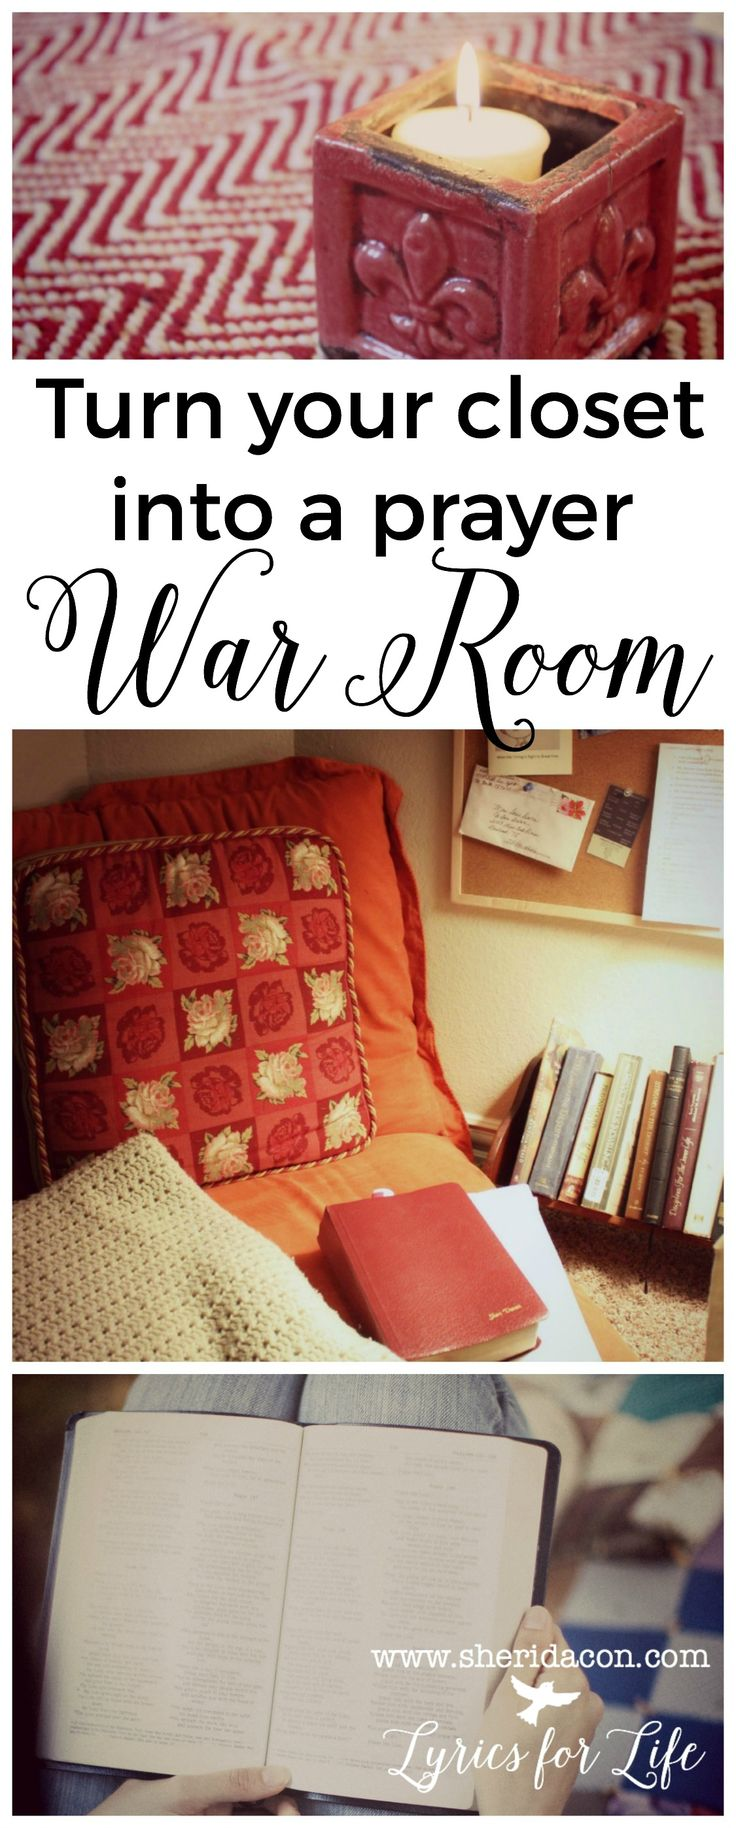 Prayer room ideas pictures remodel and decor - Want To Transform Even The Tiniest Space Into A Prayer Closet Or A Personal War